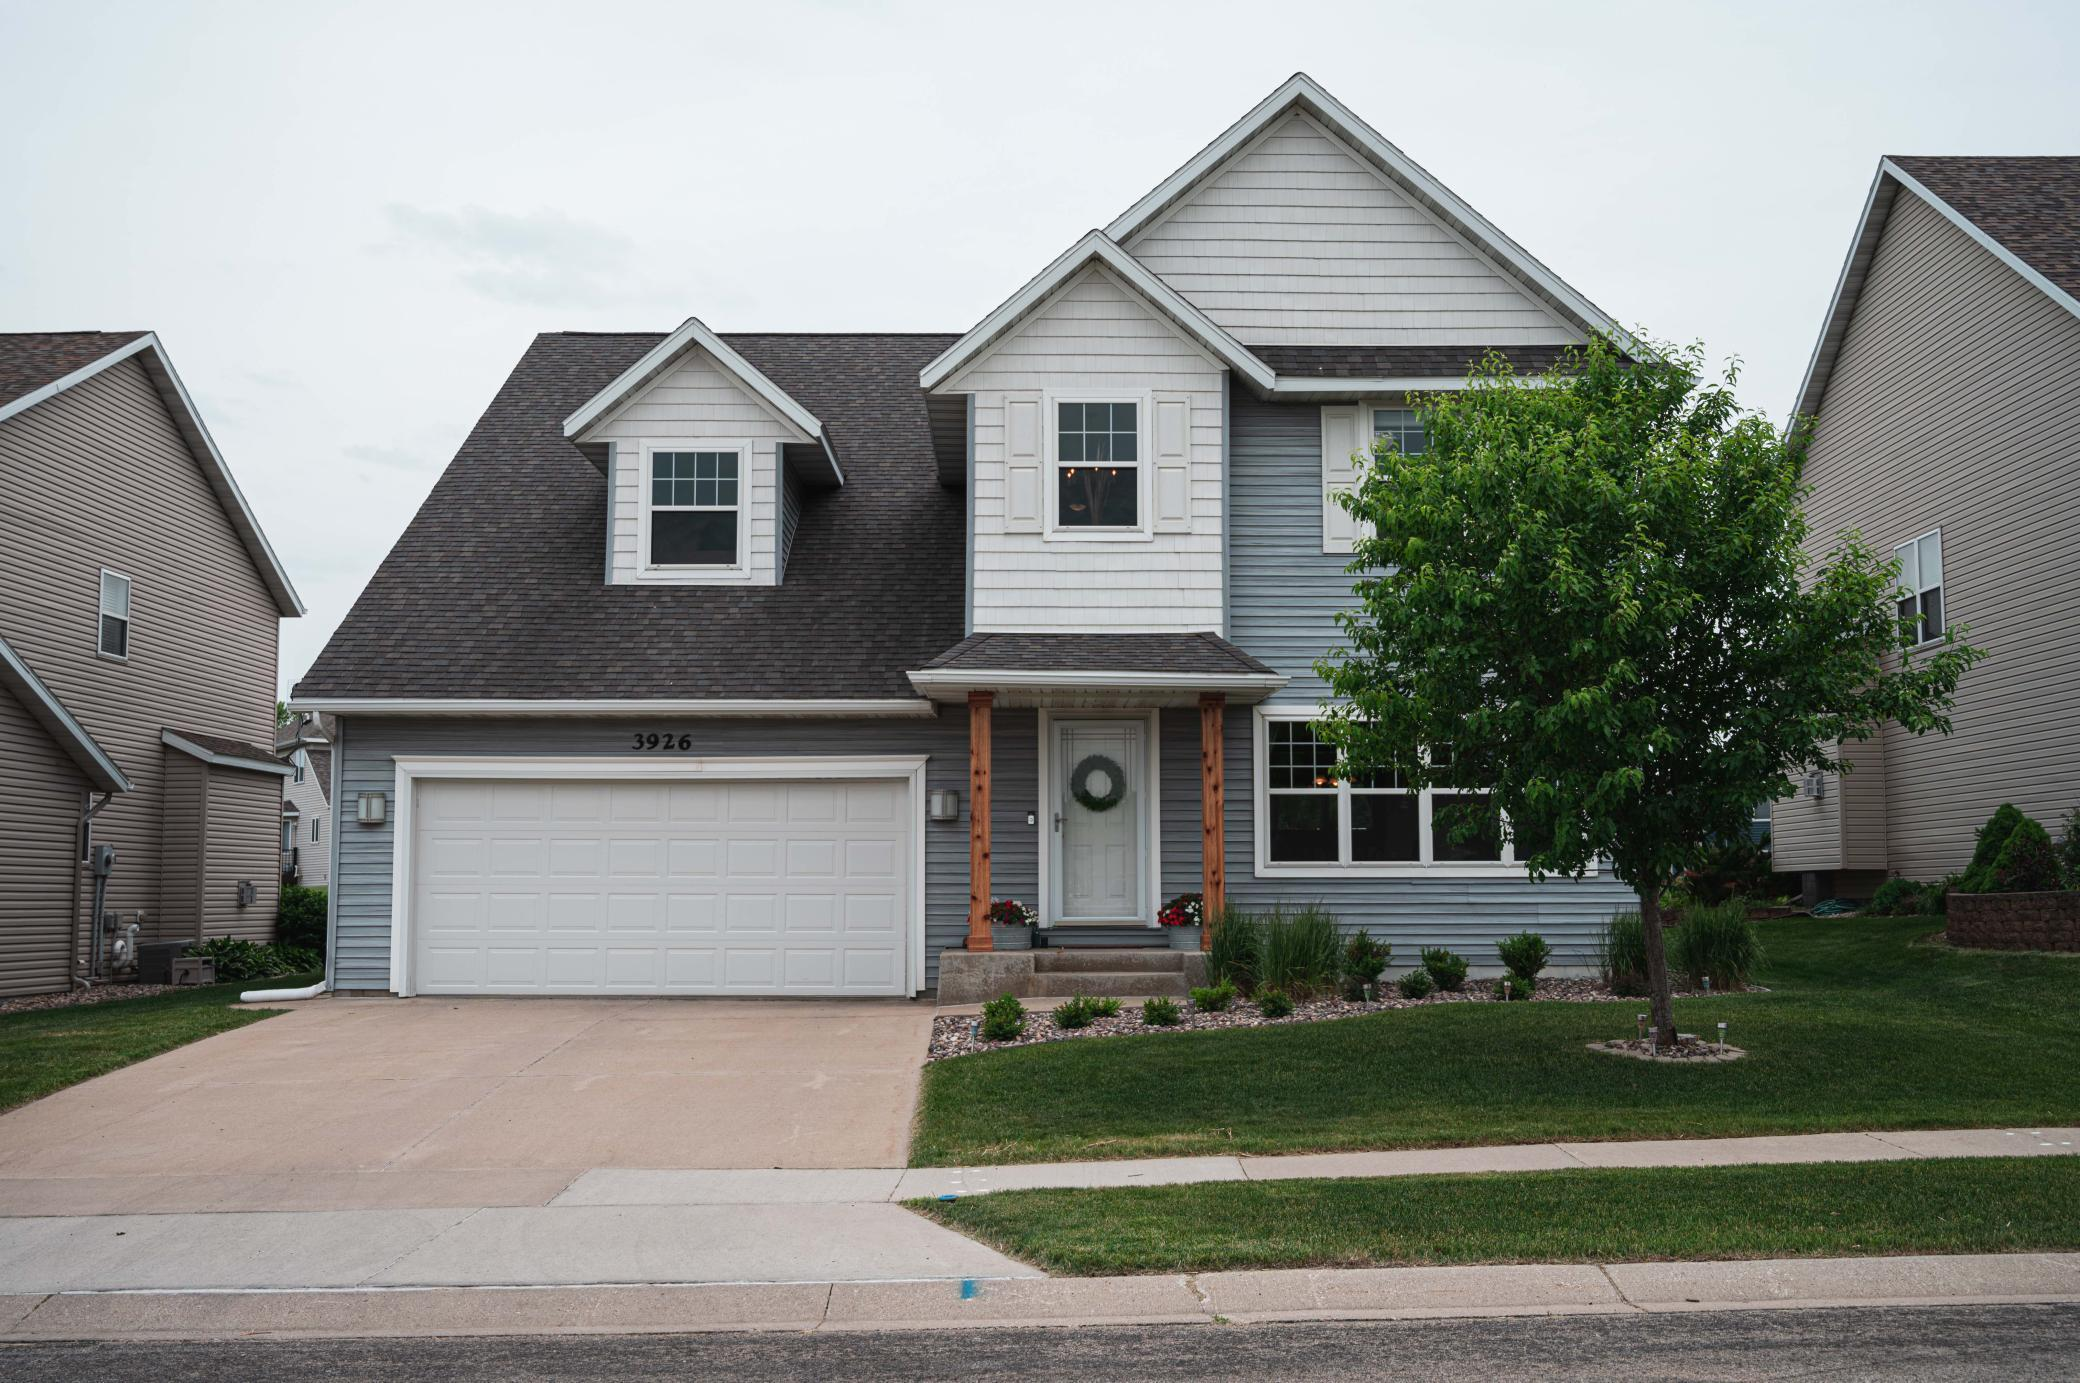 3926 Jonafree NW Property Photo - Rochester, MN real estate listing